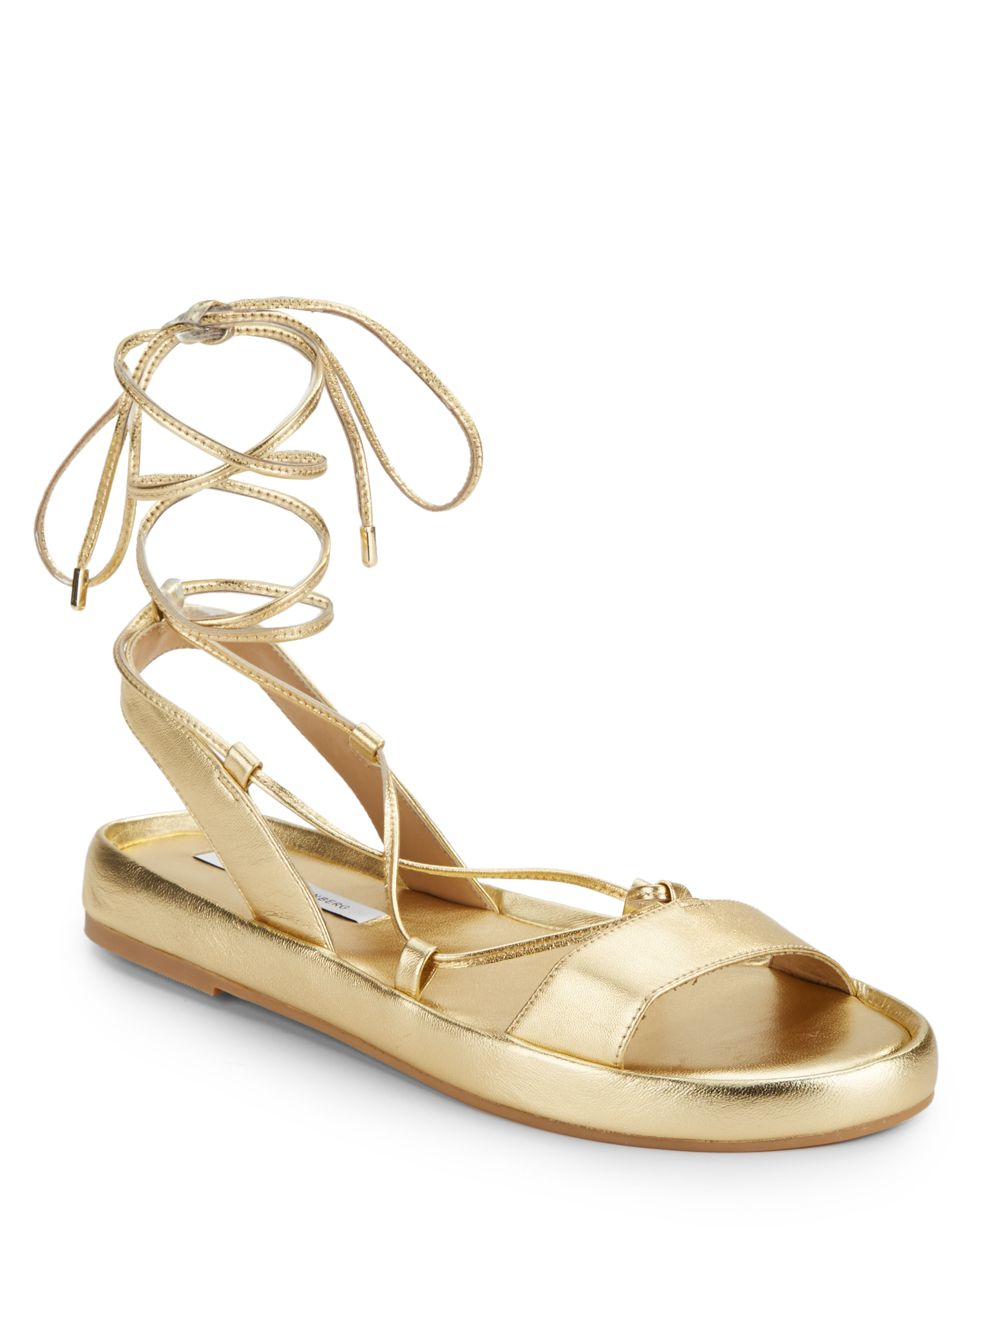 online for sale Diane von Furstenberg Metallic Lace-Up Flats low cost sale online best store to get for sale wW7MgH4